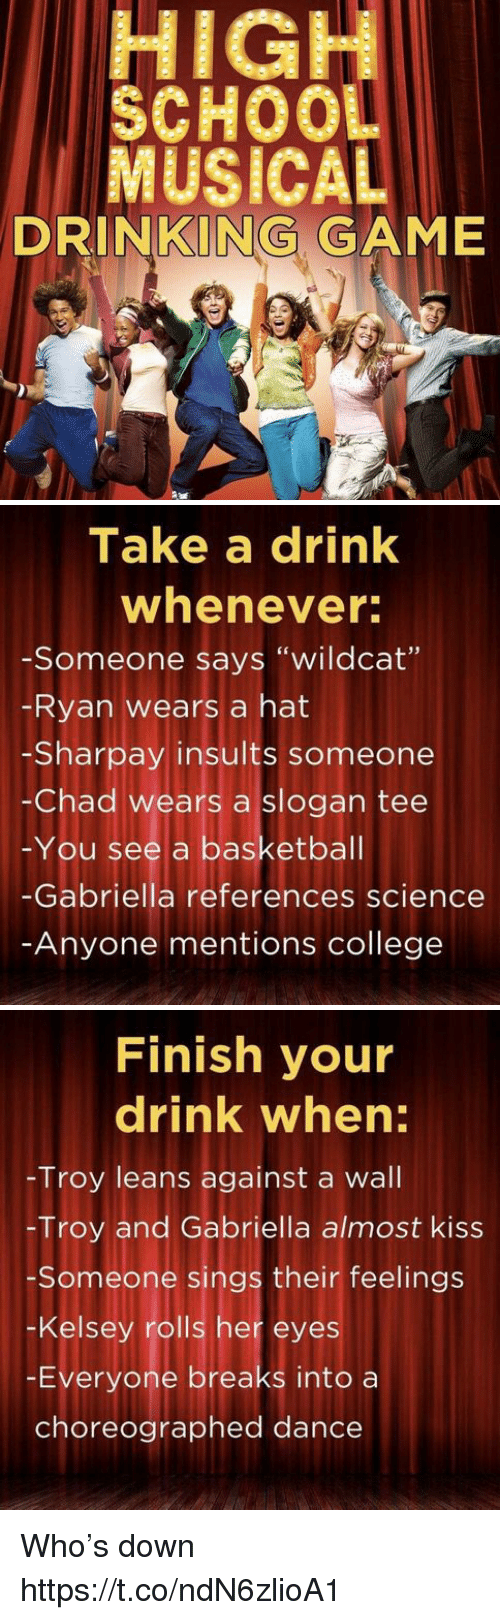 "Basketball, College, and Drinking: HIGH  SCHOOL  MUSICAL  DRINKING GAME   Take a drink  whenever  -Someone says ""wildcat'""  Ryan wears a hat  -Sharpay insults someone  -Chad wears a slogan tee  You see a basketball  Gabriella references science  Anyone mentions college   Finish your  drink when:  Troy leans against a wall  -Troy and Gabriella almost kiss  Someone sings their feelings  -Kelsey rolls her eyes  Everyone breaks into a  choreographed dance Who's down https://t.co/ndN6zlioA1"